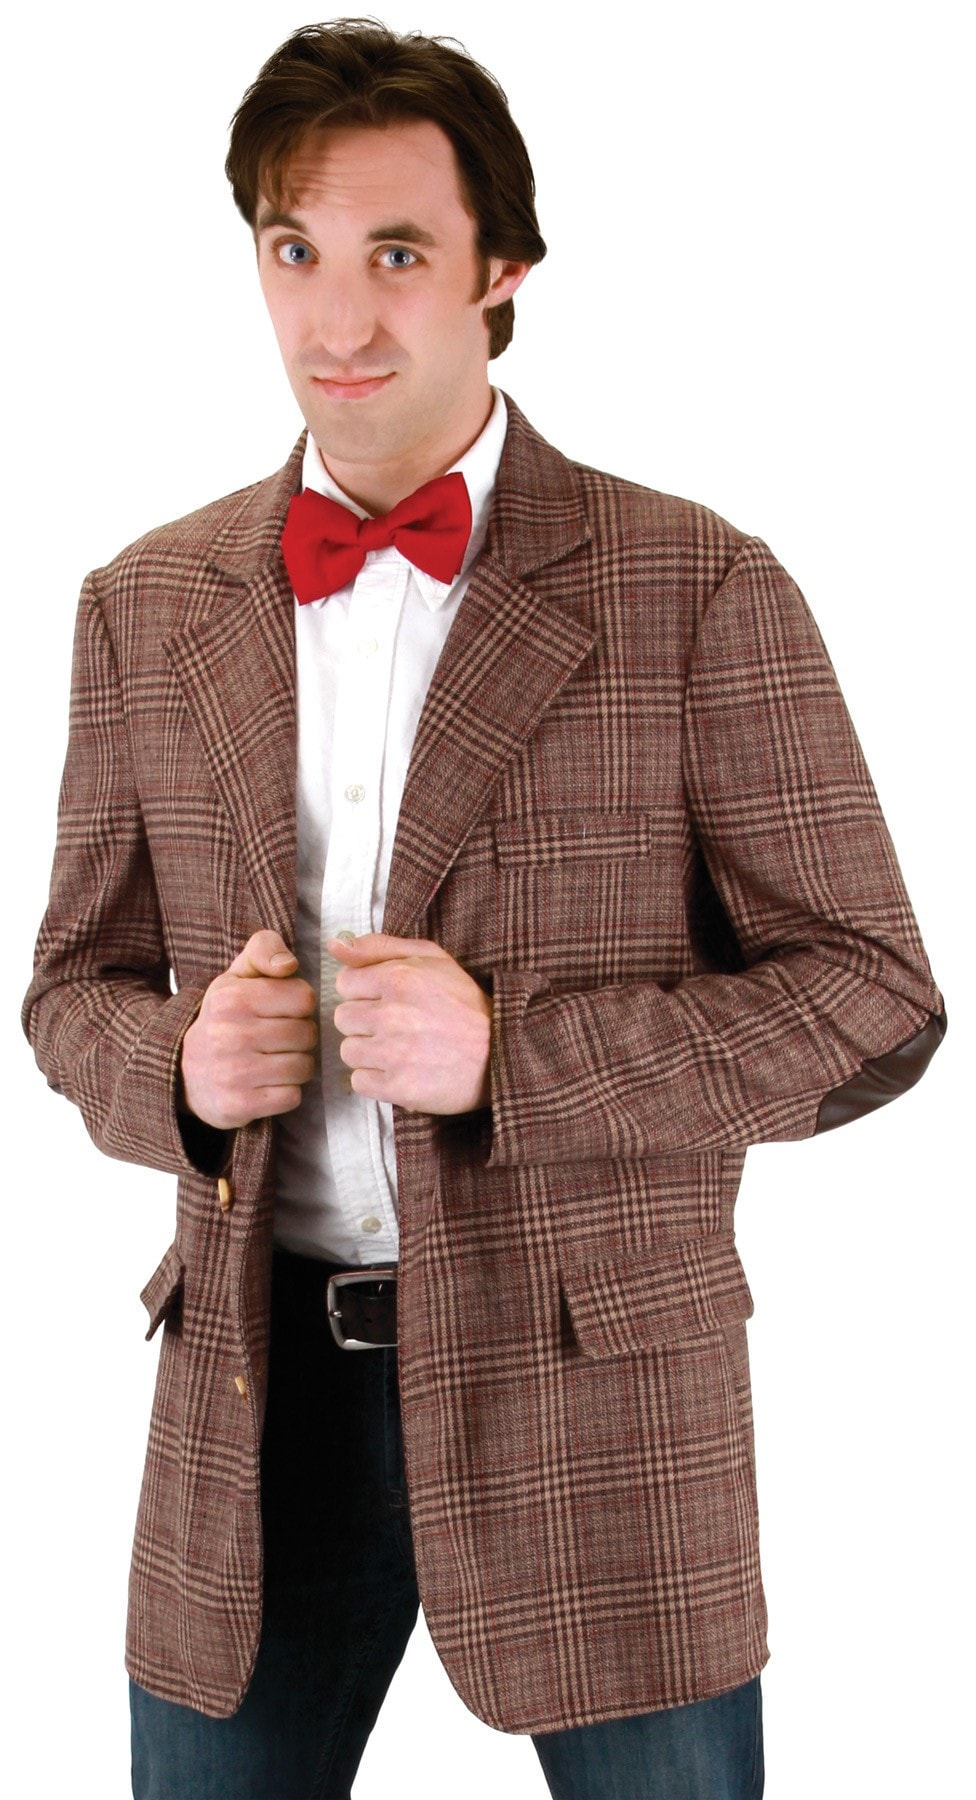 Morris Doctor Who 11th Doctor Lg/xl - MaxWigs